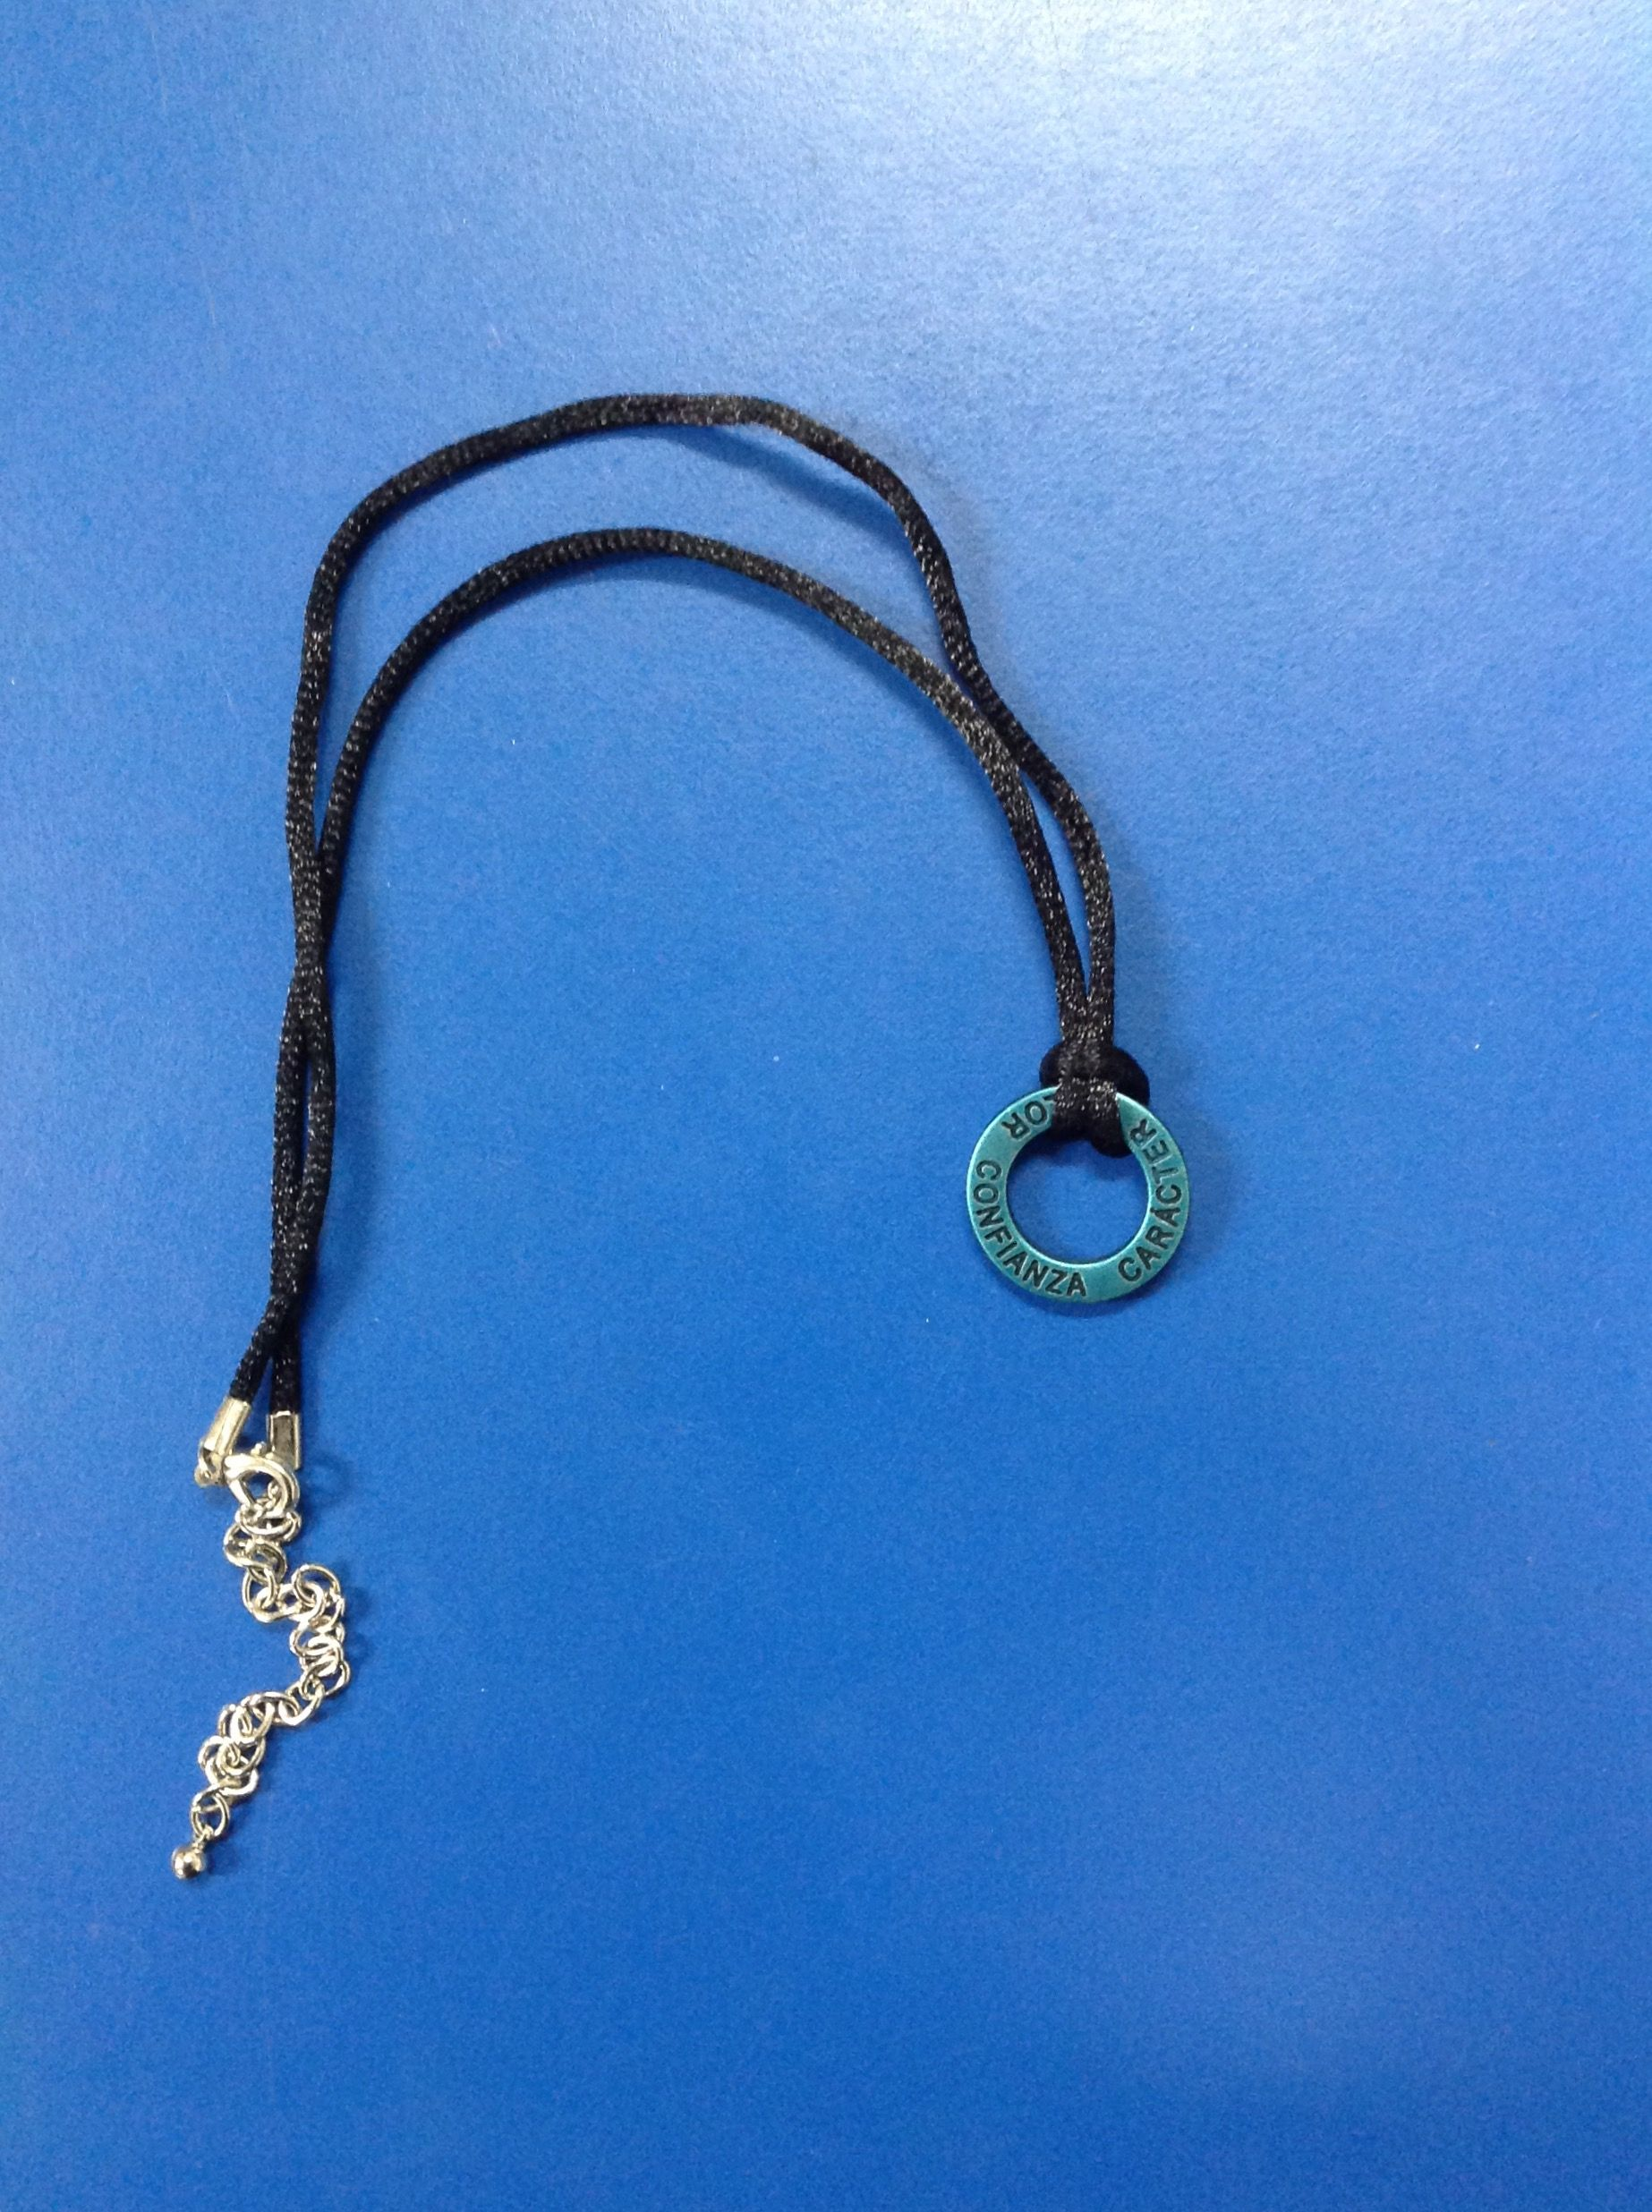 The Girl Scouts challenge 3 necklace 11–17 (BLUE) #09716. $3.00  The Girl Scouts challenge 2 necklace Junior Girl Scouts (SAME BUT PINK) #09715 $3